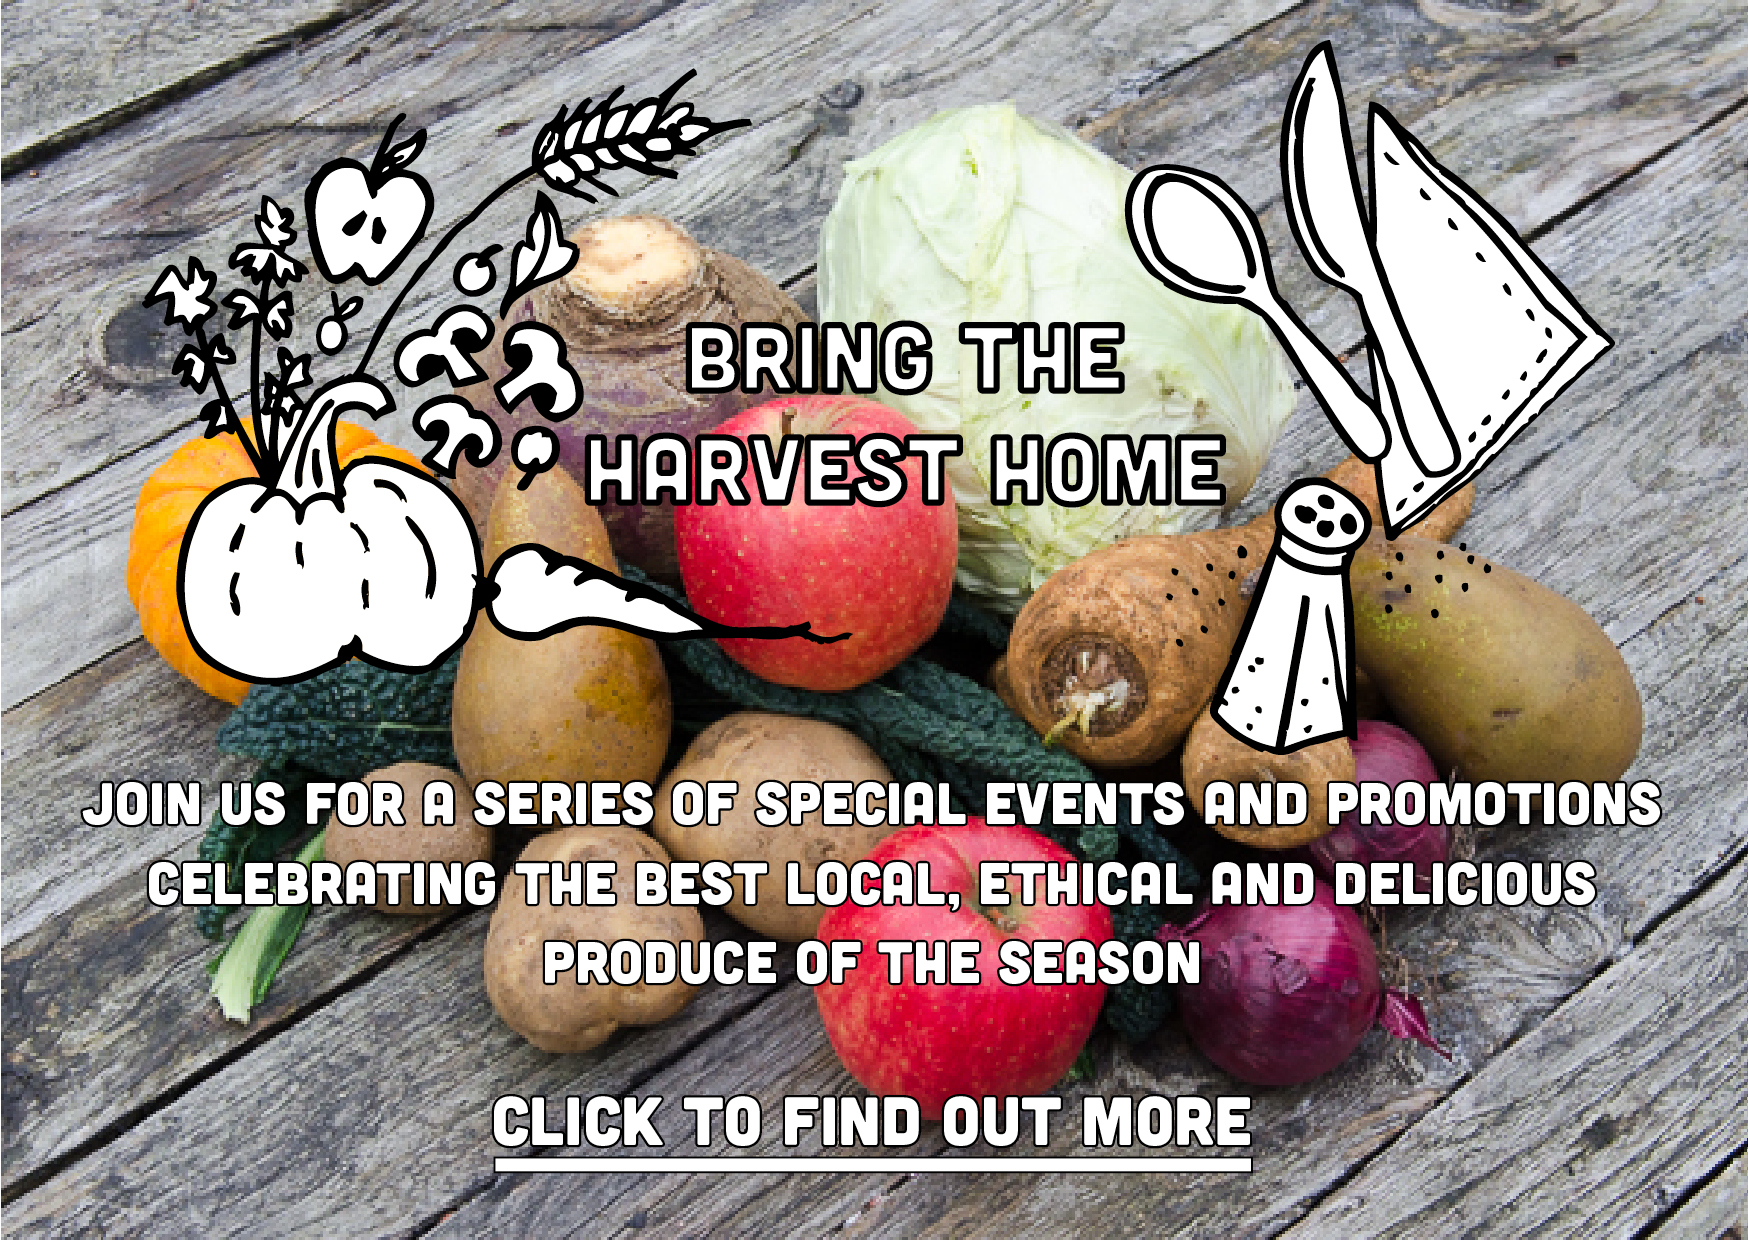 Bring the Harvest Home